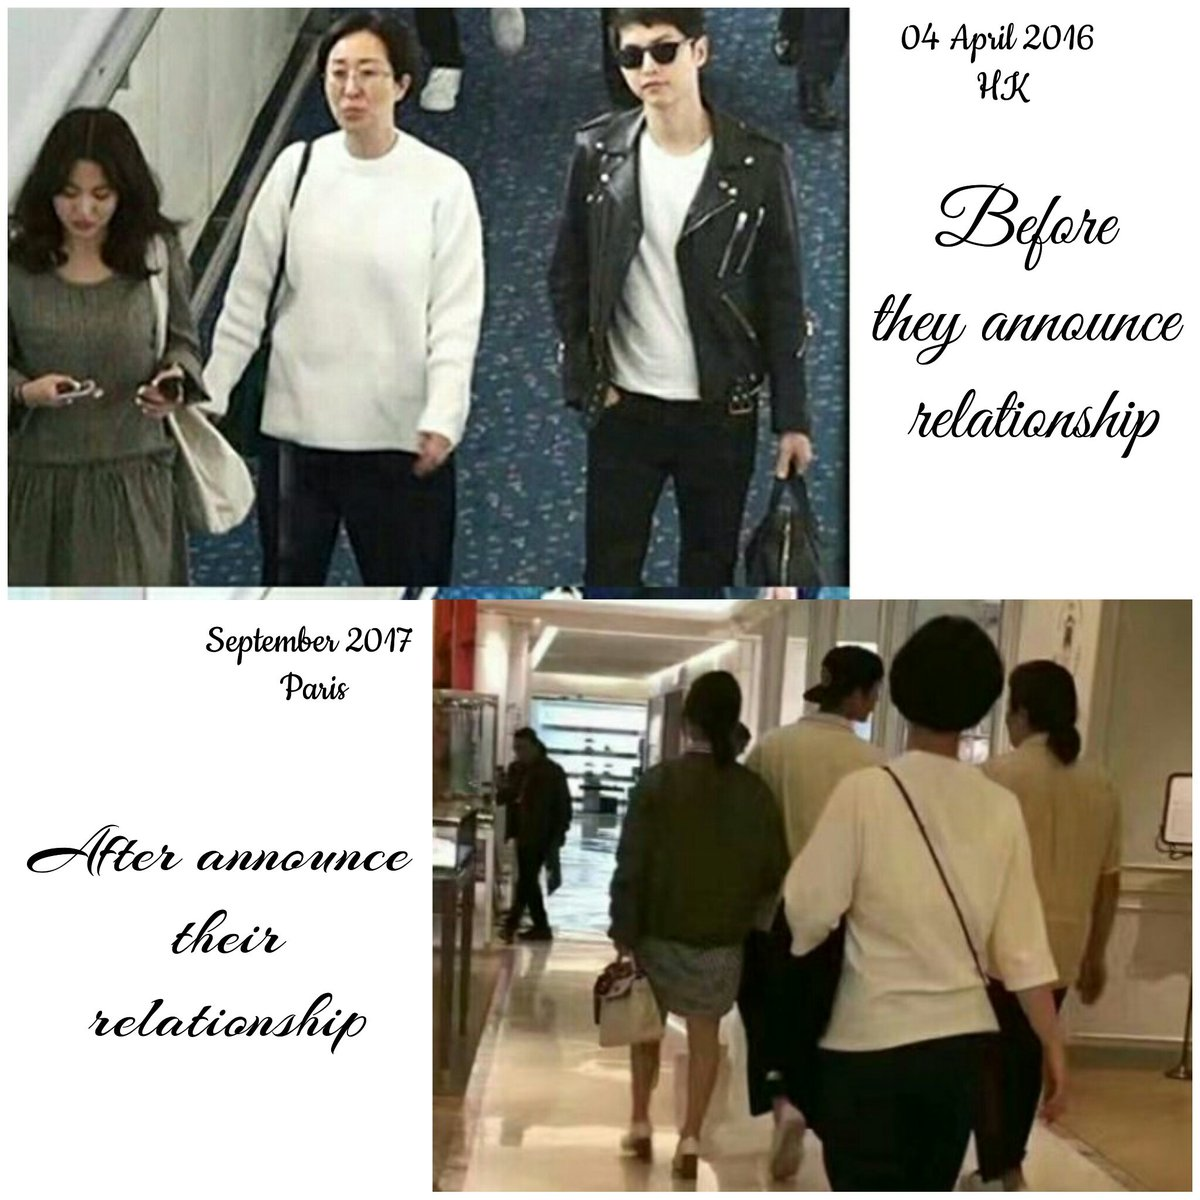 The different is miss park  ( from center to be behind)  #SongSongCouple  #HK #Paris <br>http://pic.twitter.com/7Pd230ngLG